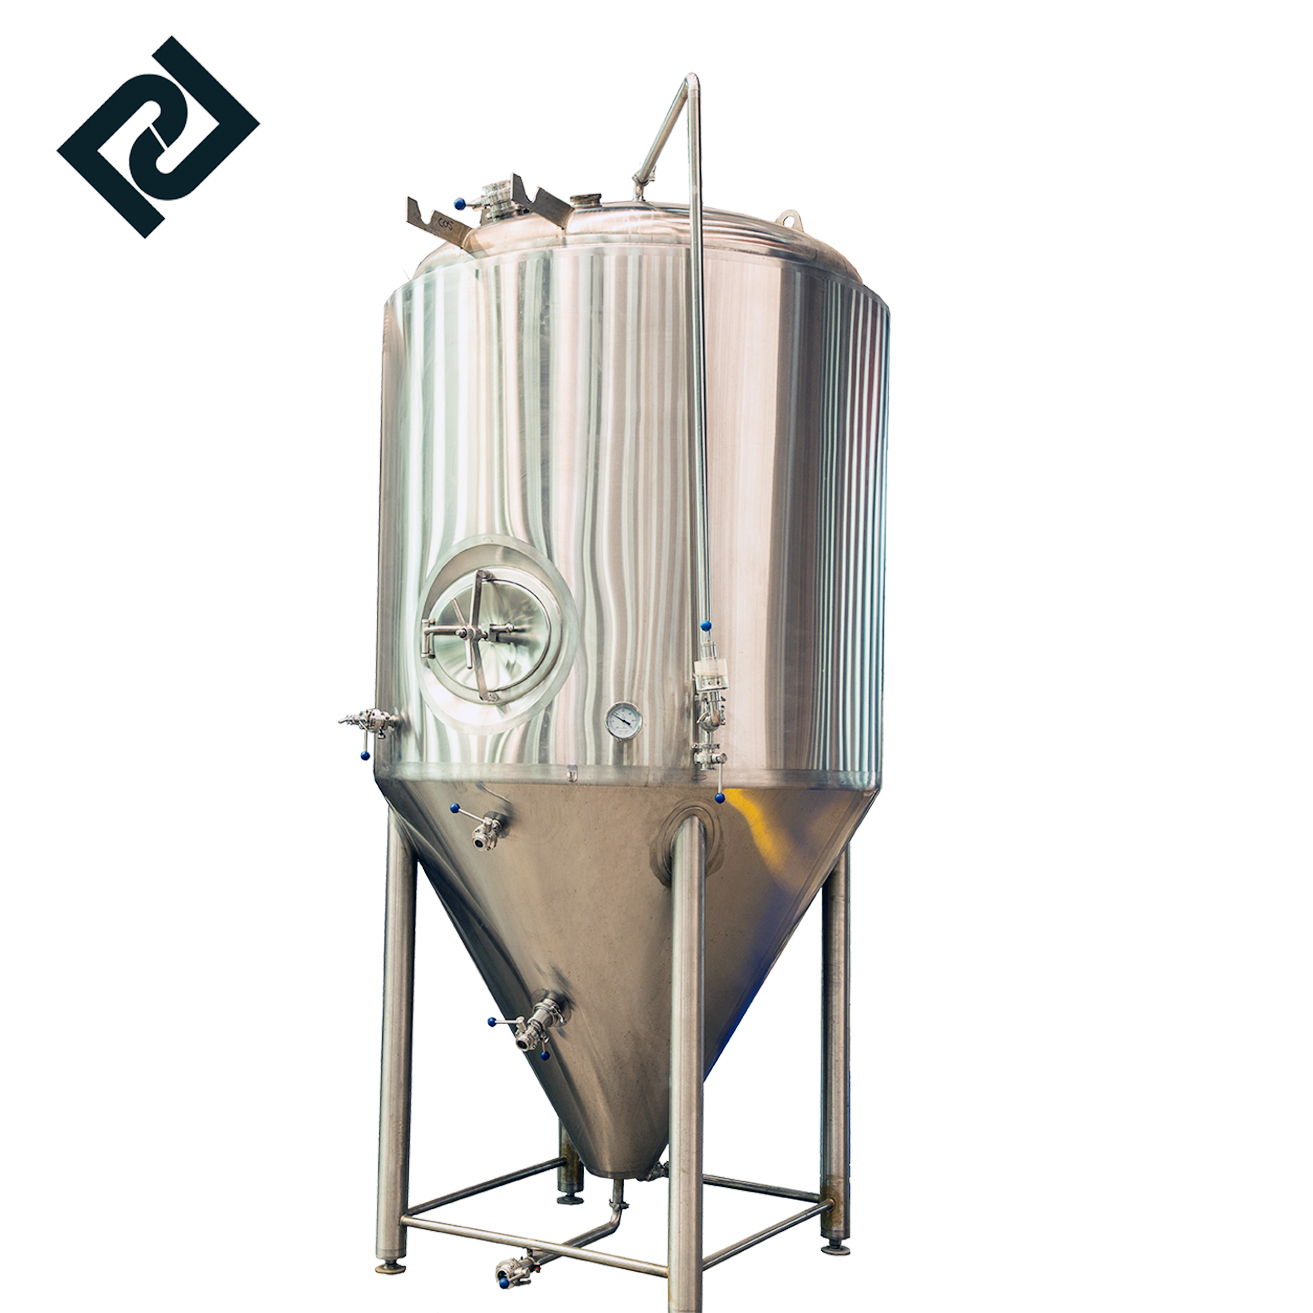 Trending Products Home Brewing Equipment Beer - 20HL 15BBL 2000L stainless steel beer brewing equipment  beer fermenter  fermentation tank – Pijiang